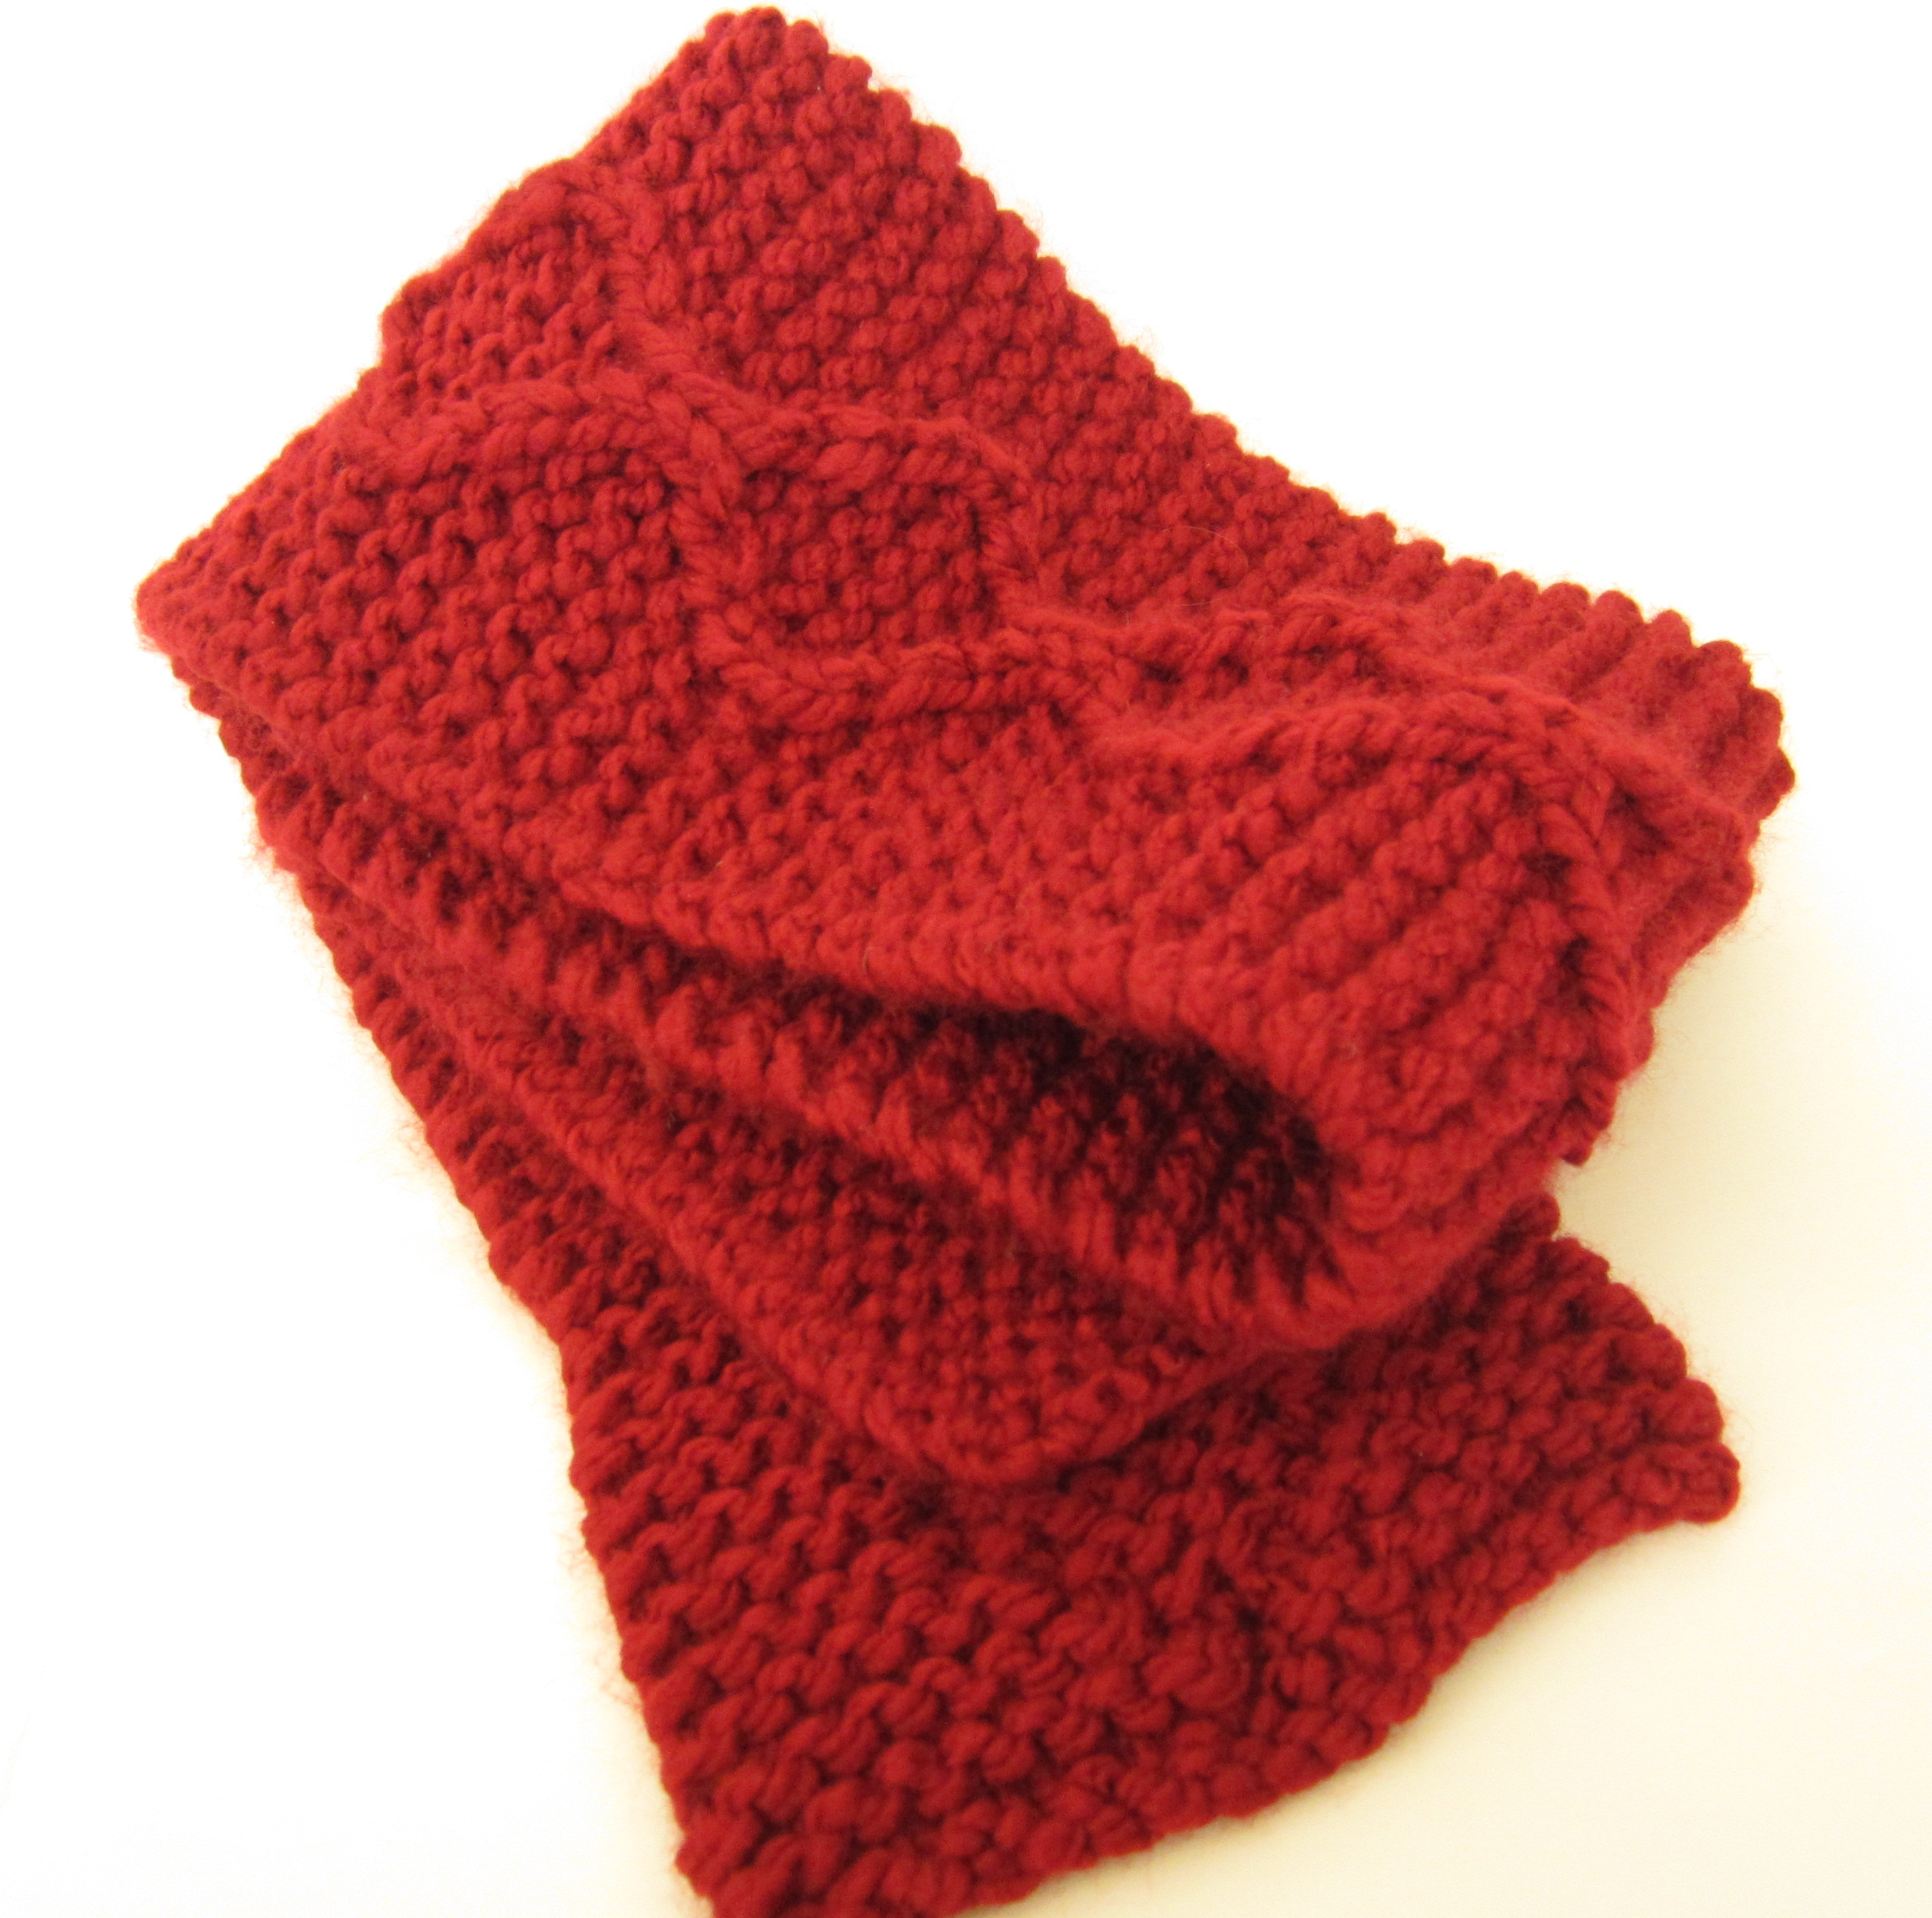 Scarf Knitting Pattern : Quick Free Knitting Pattern - Chunky Cable Scarf